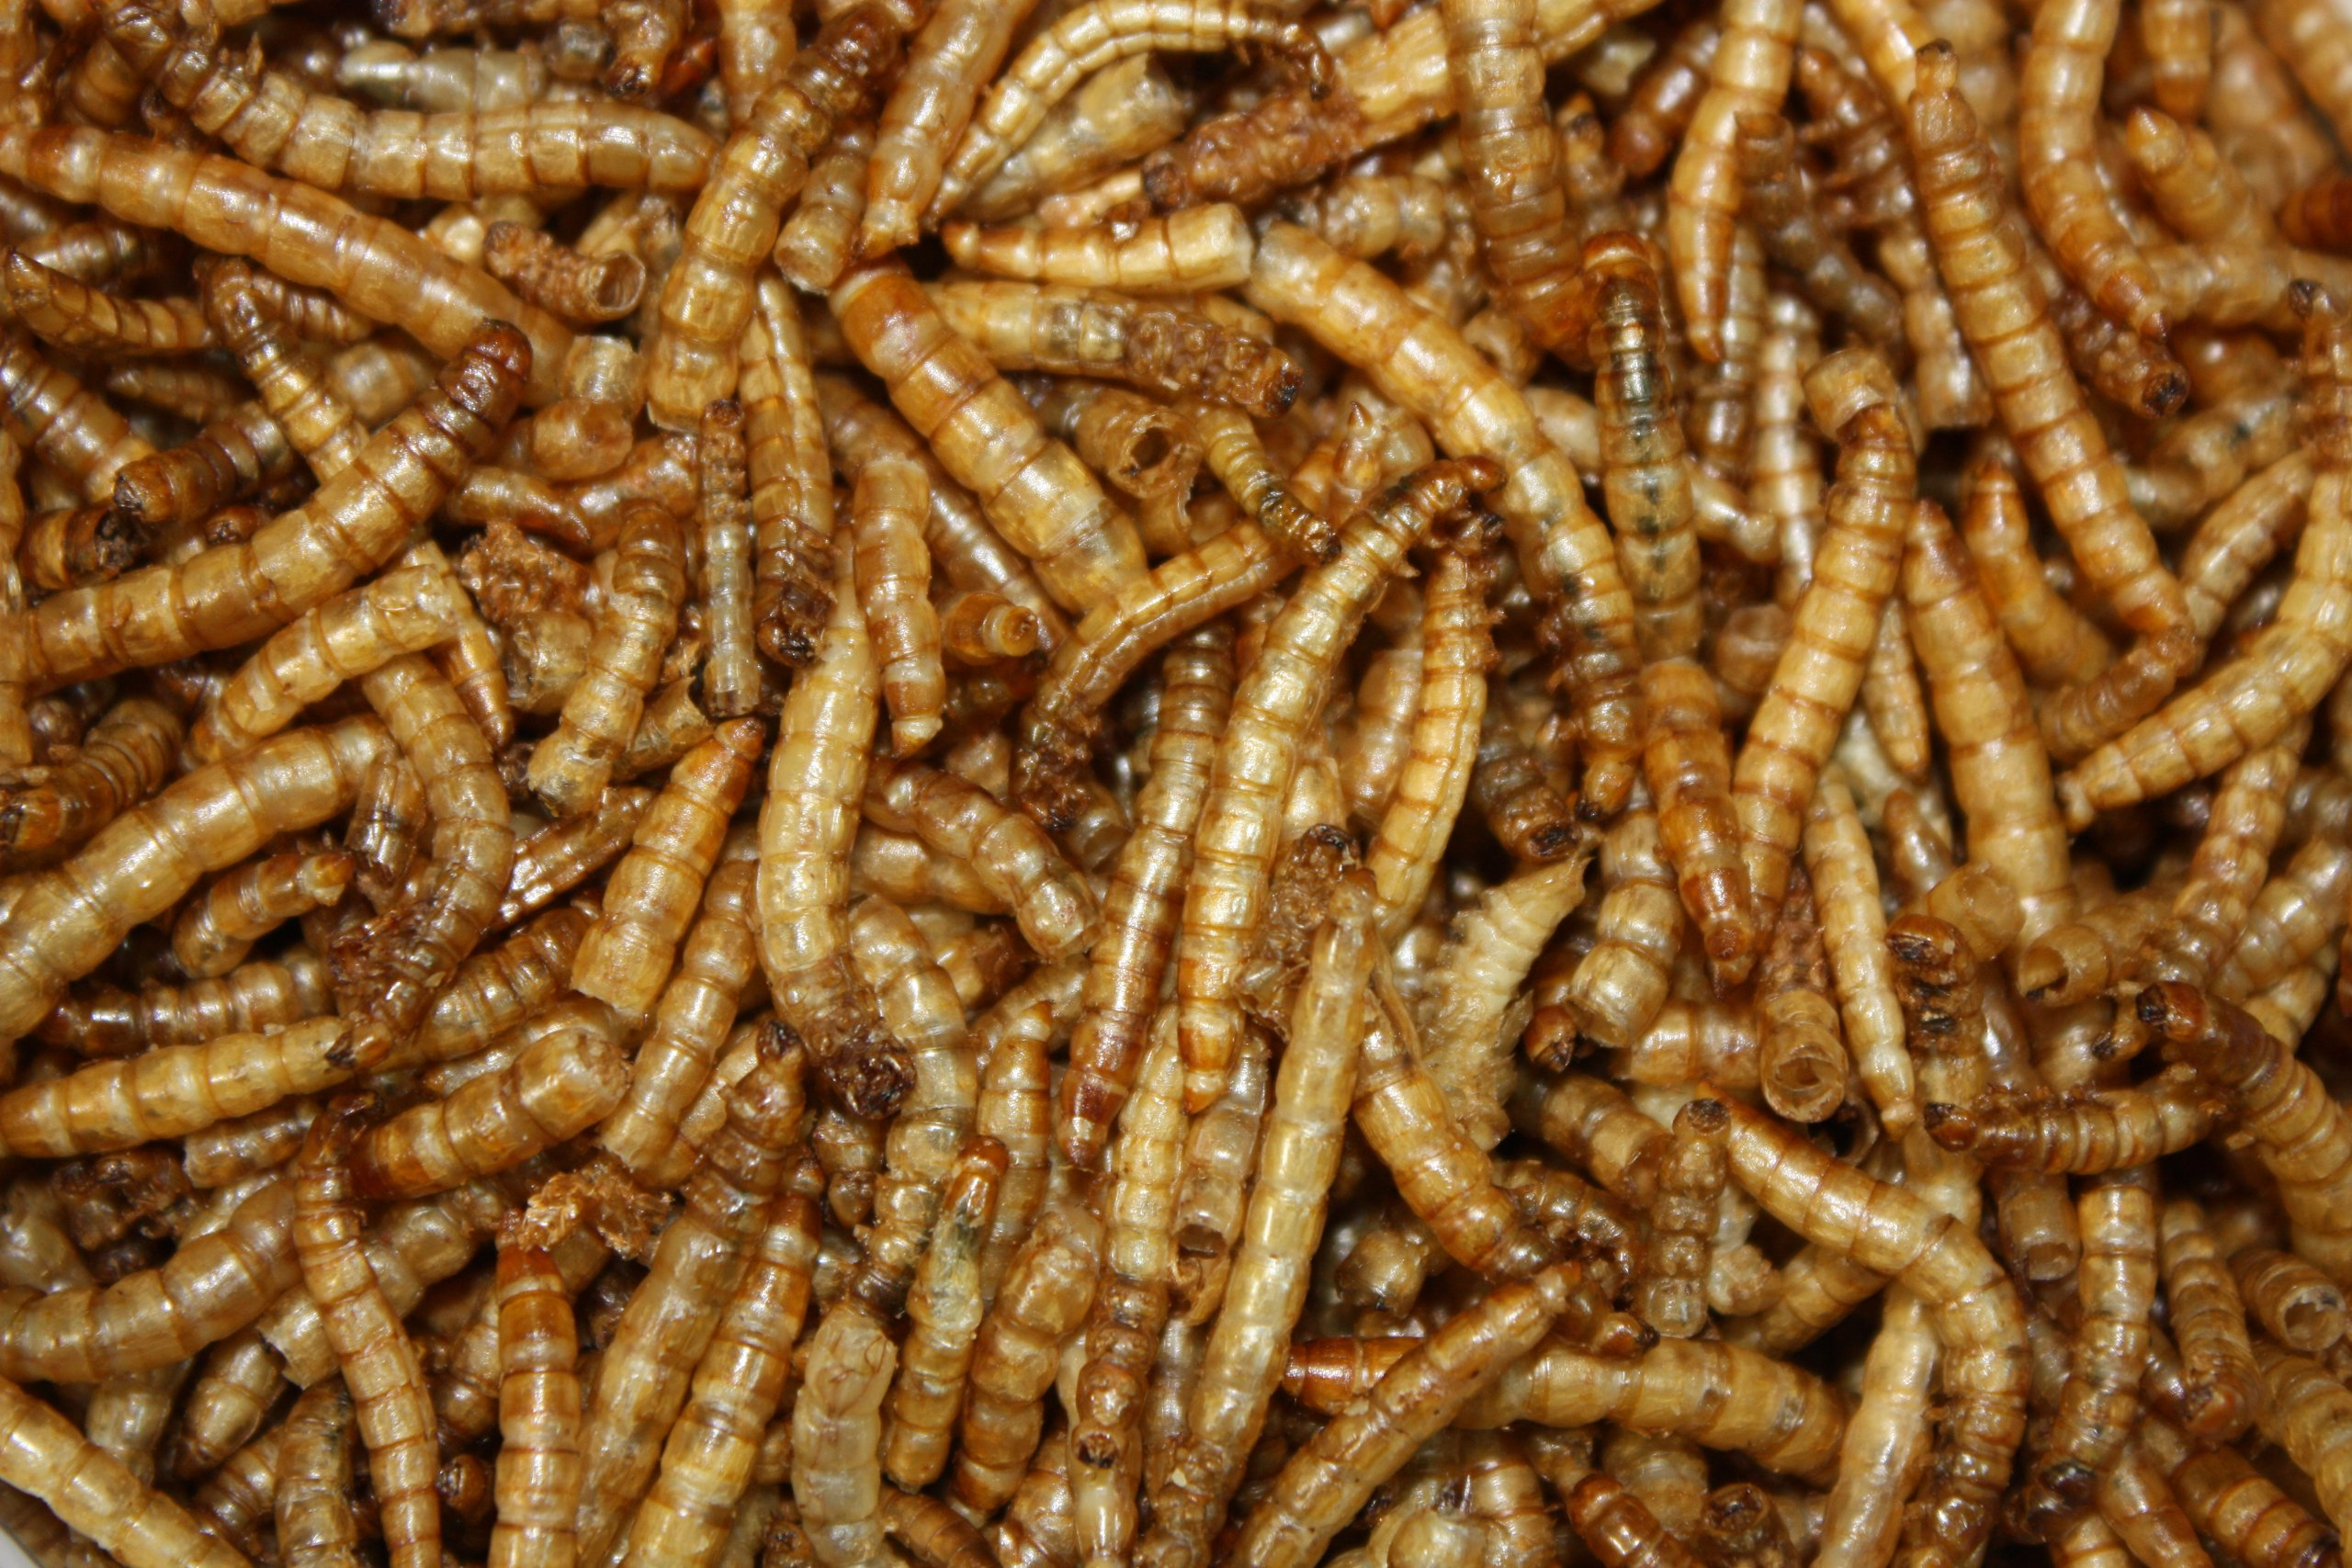 11 Lbs Tasty Worms Bulk Freeze Dried Mealworms Approx. 176,000ct by Tasty Worms (Image #2)